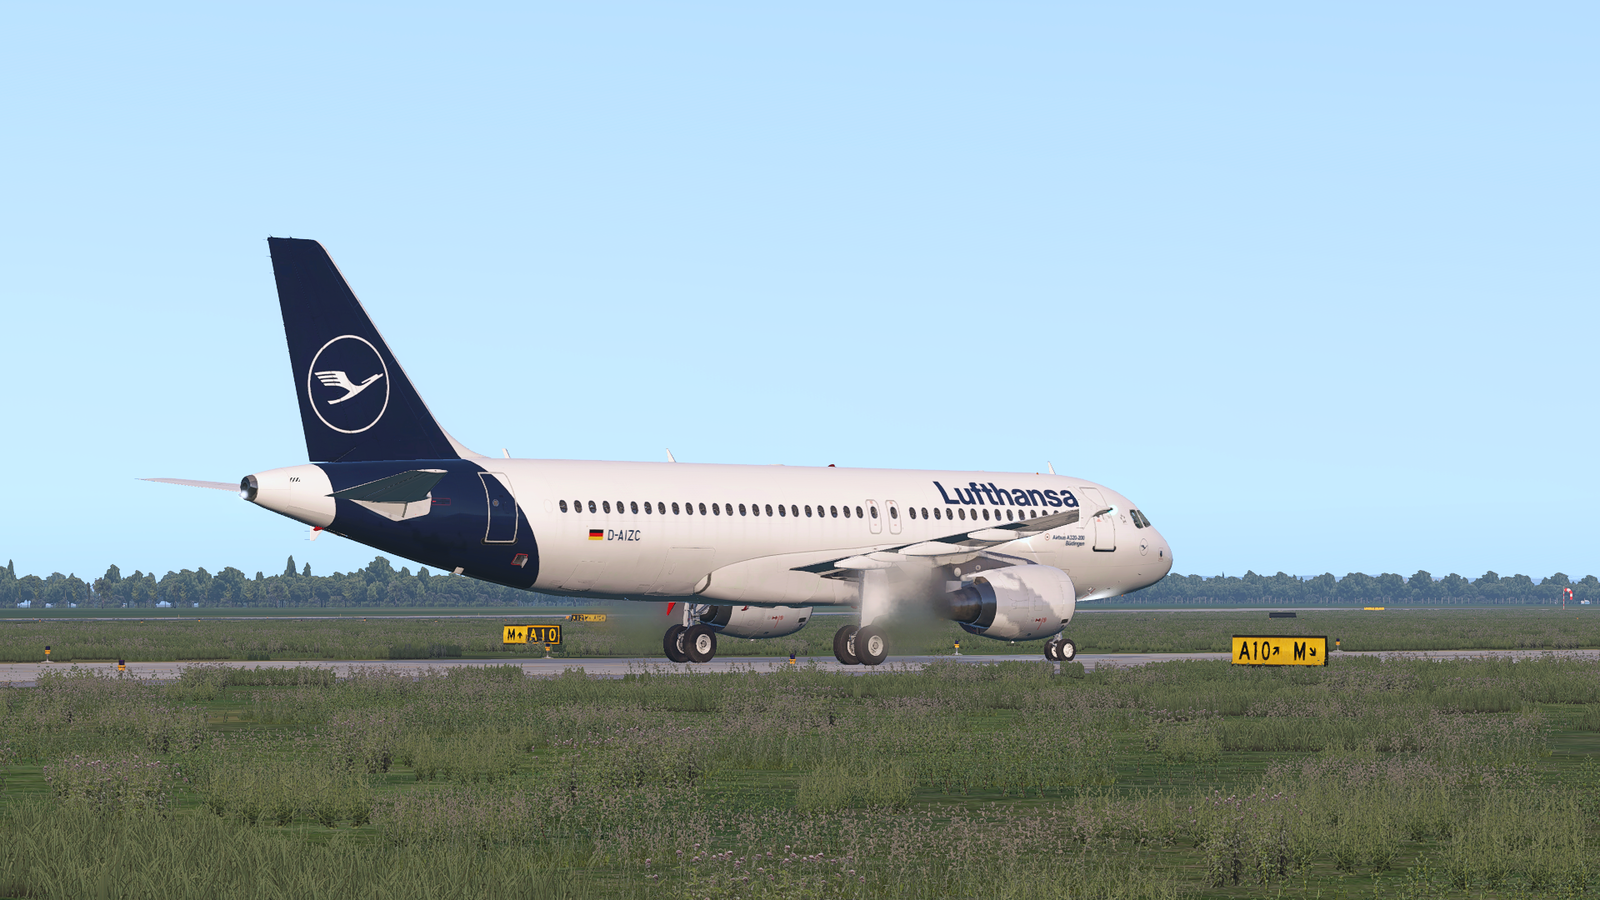 X-Plane Screenshot 2019.01.30 - 18.57.04.27.png